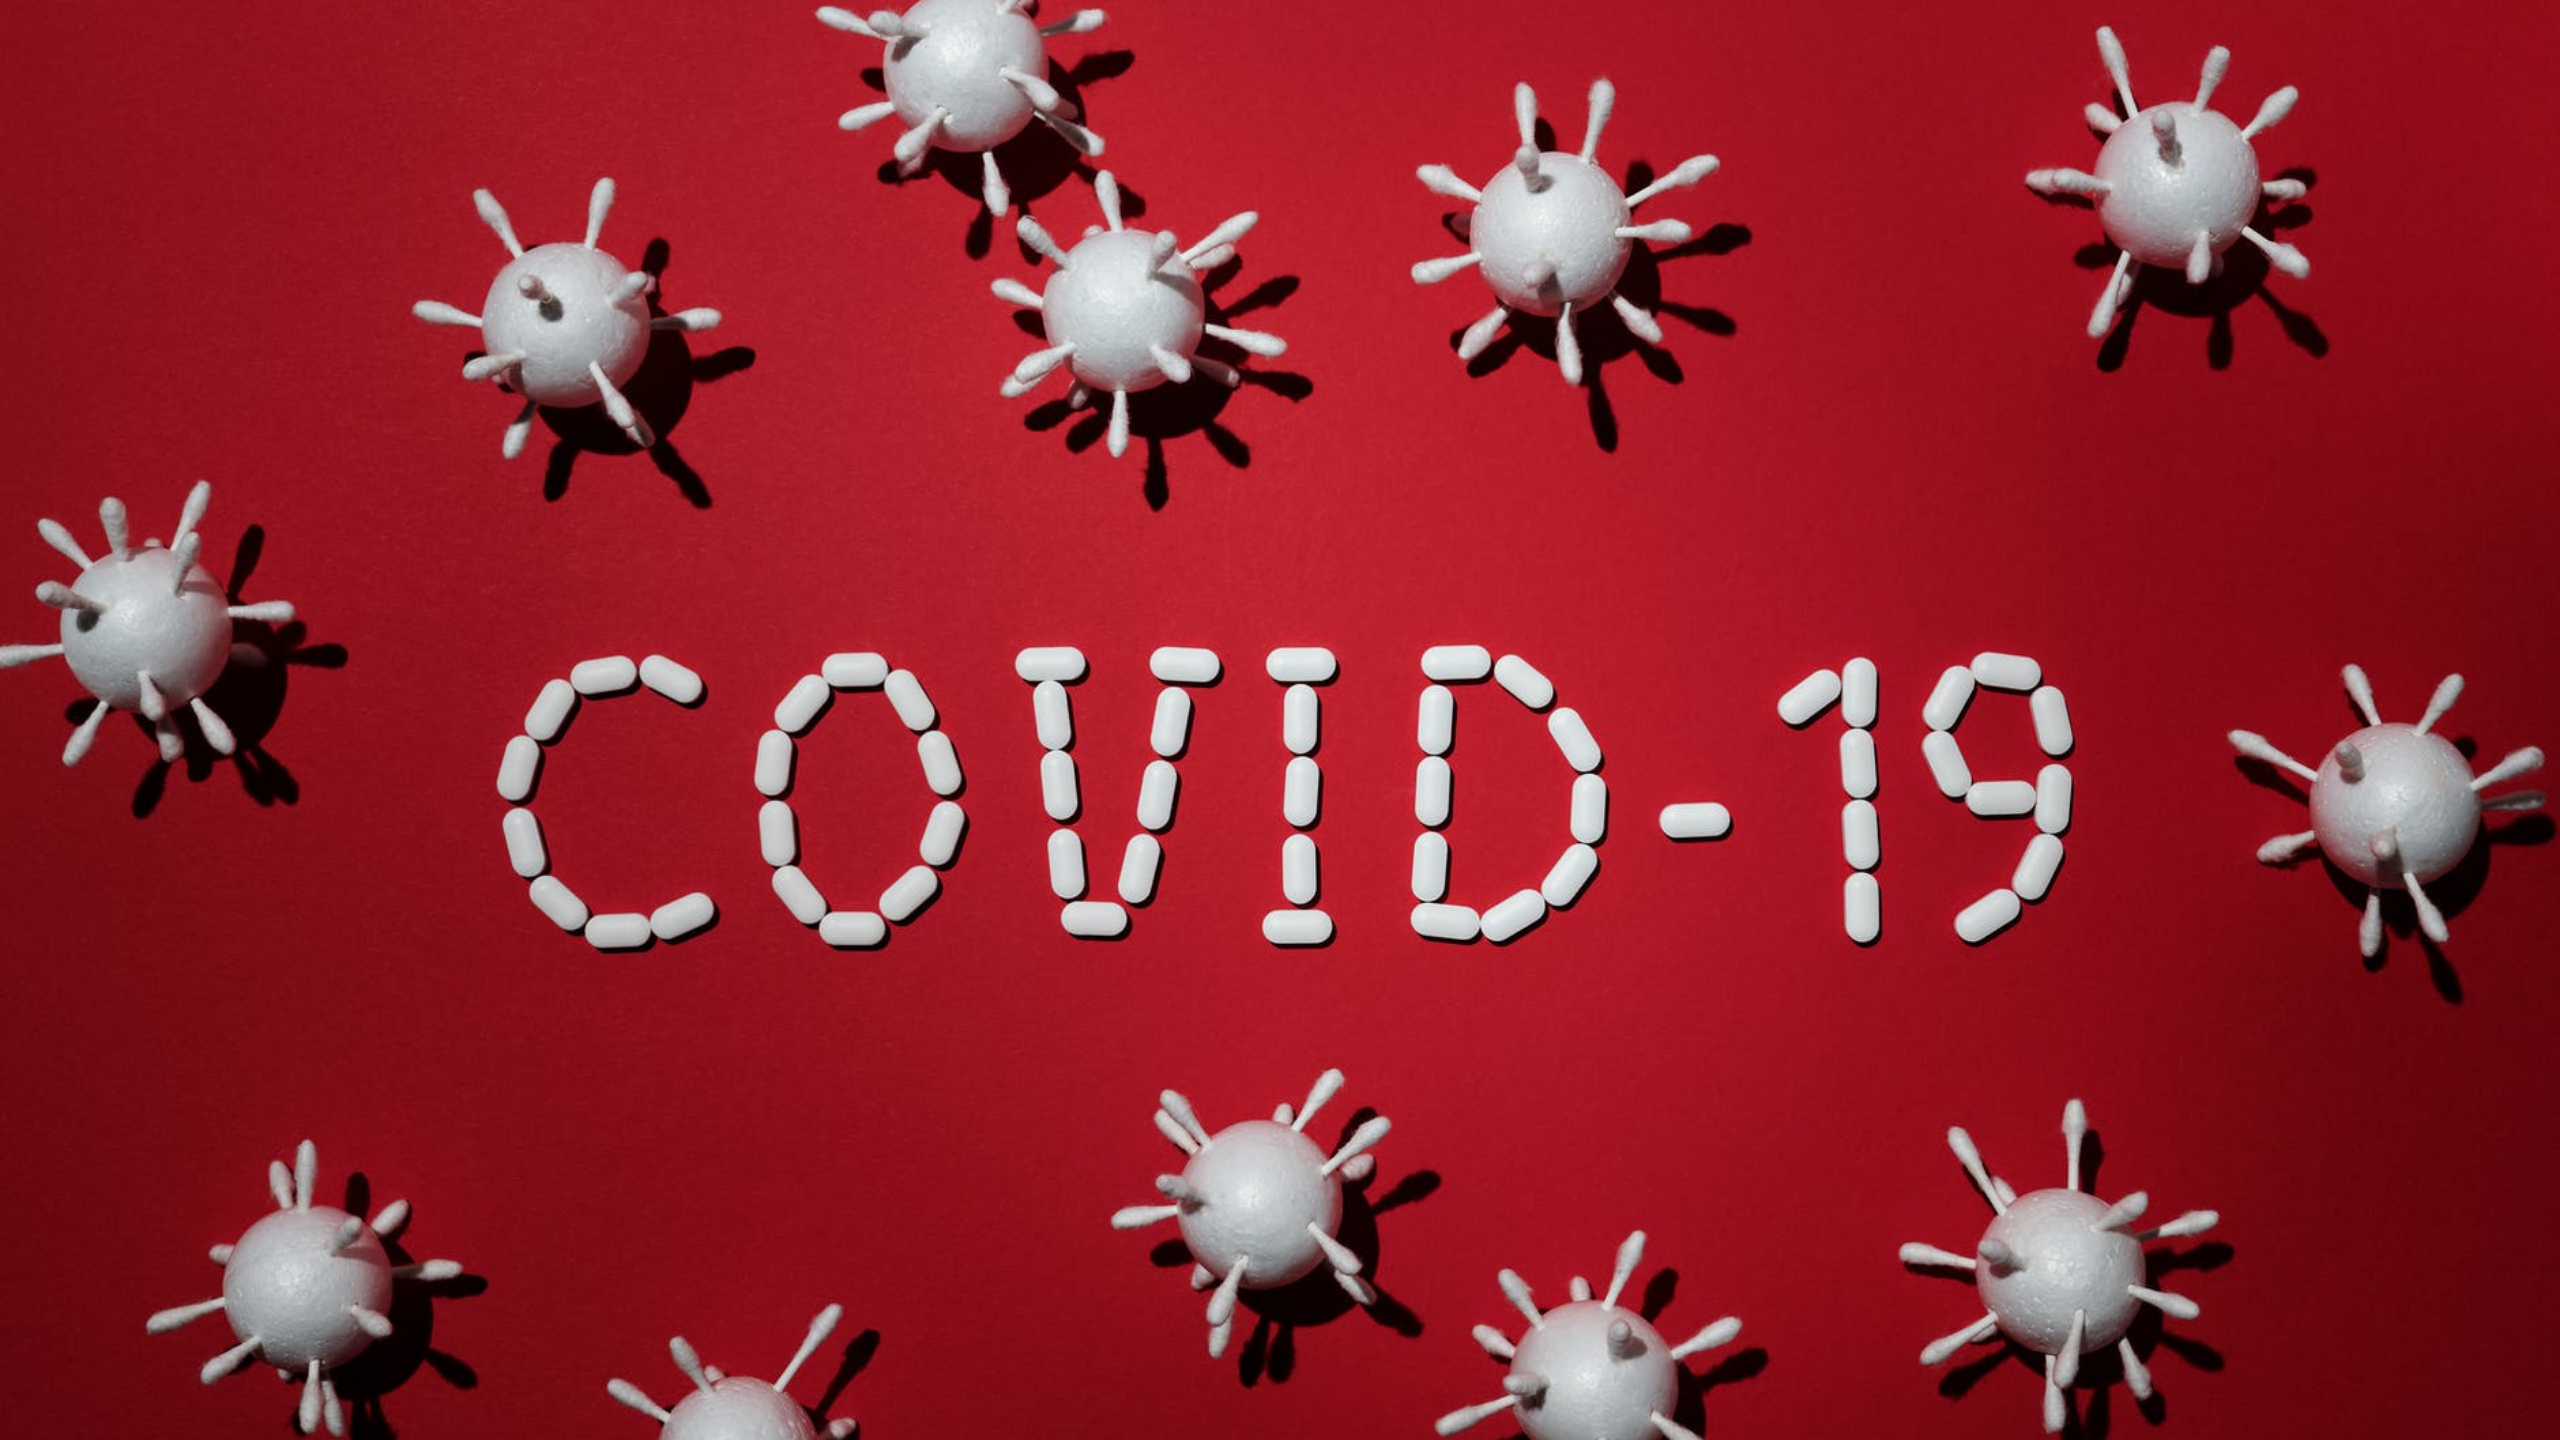 Covid-19 germs